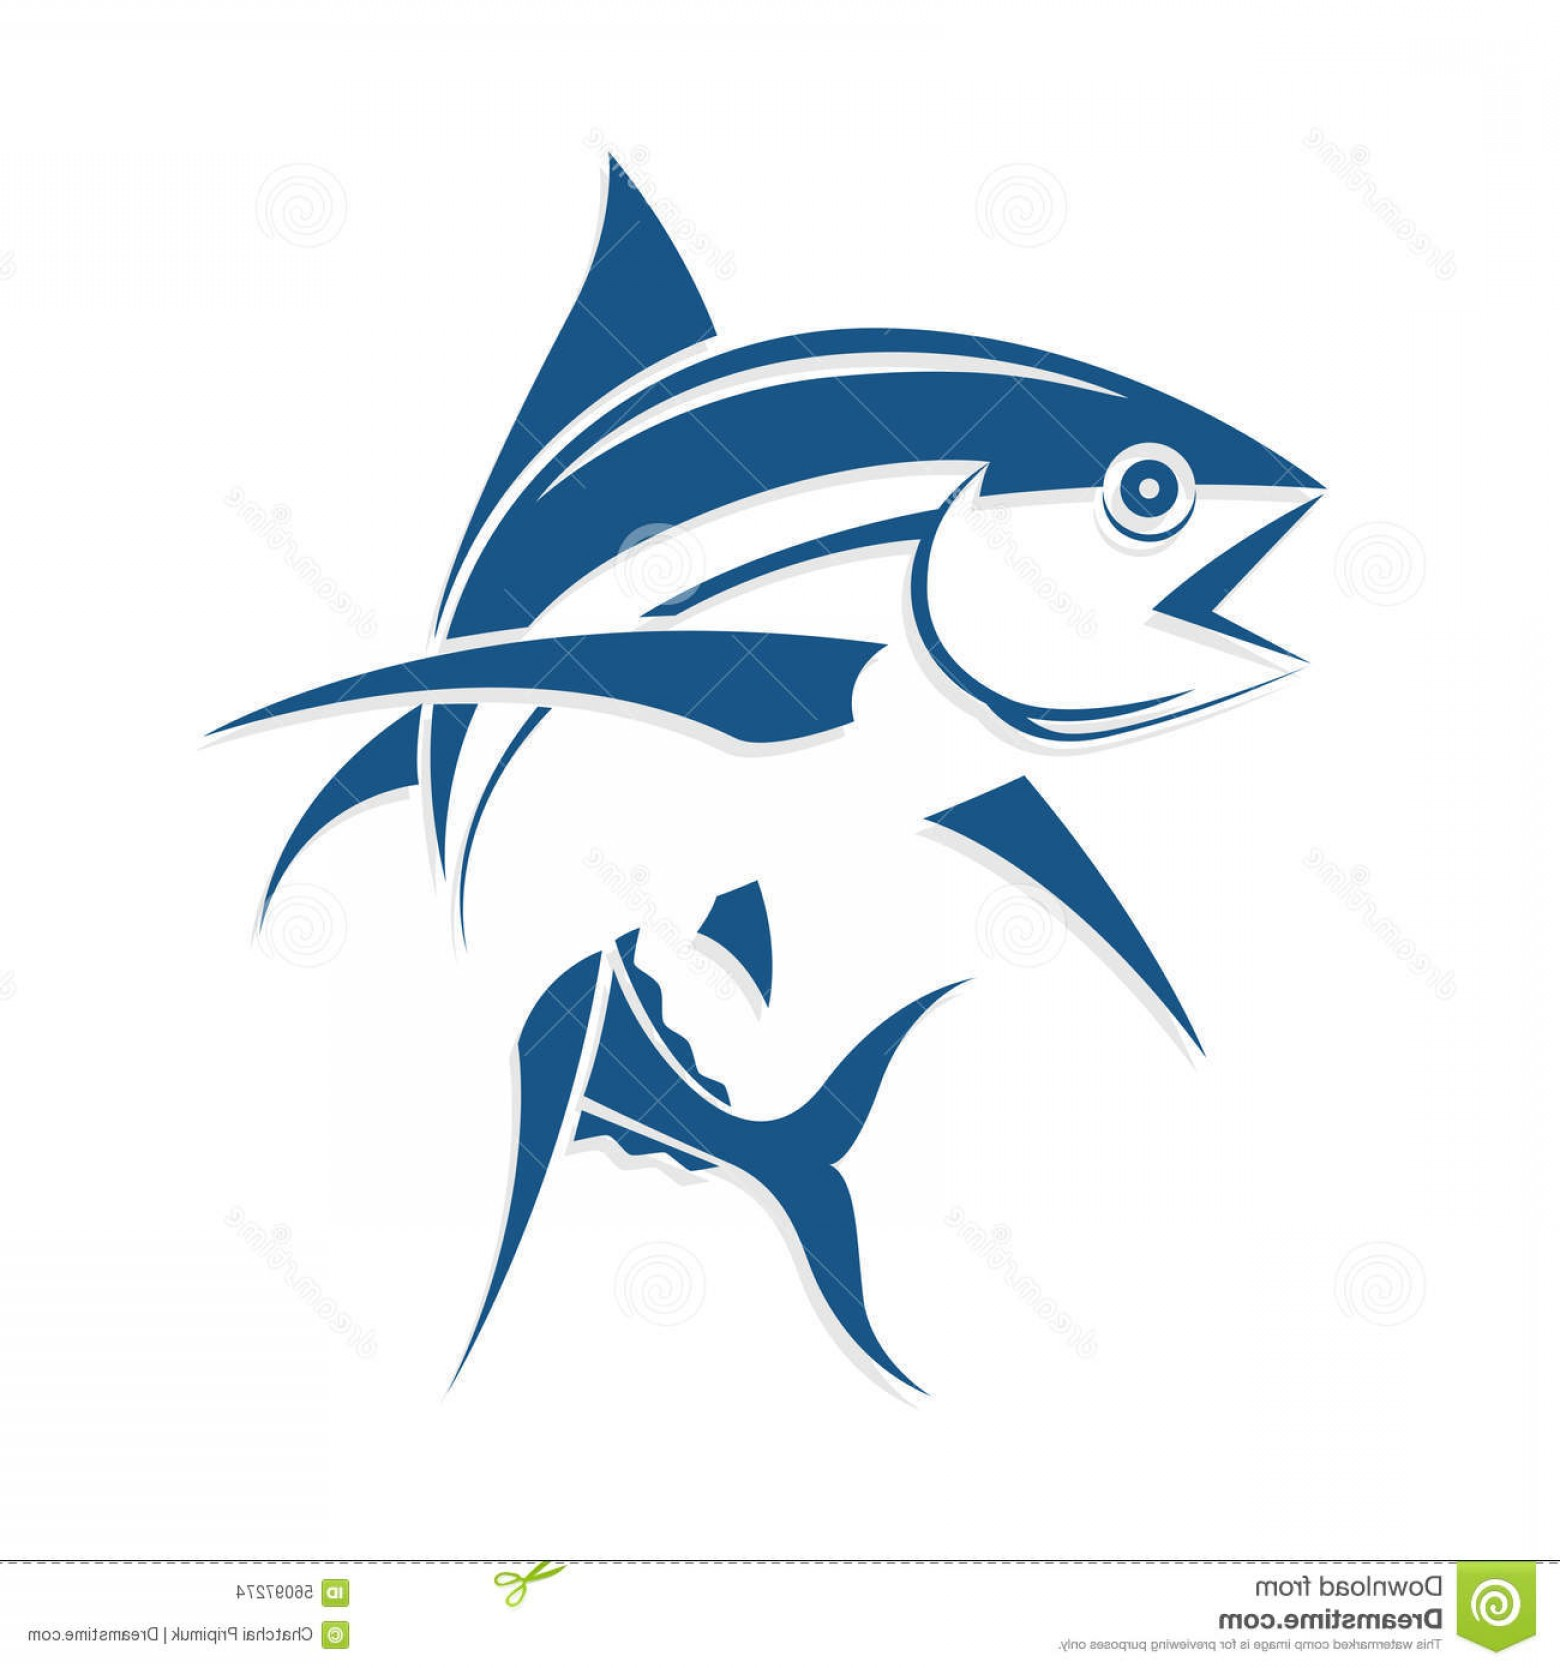 Fish Vector Graphic: Stock Illustration Graphic Fish Tattoo Style Vector Beautiful Eps Image